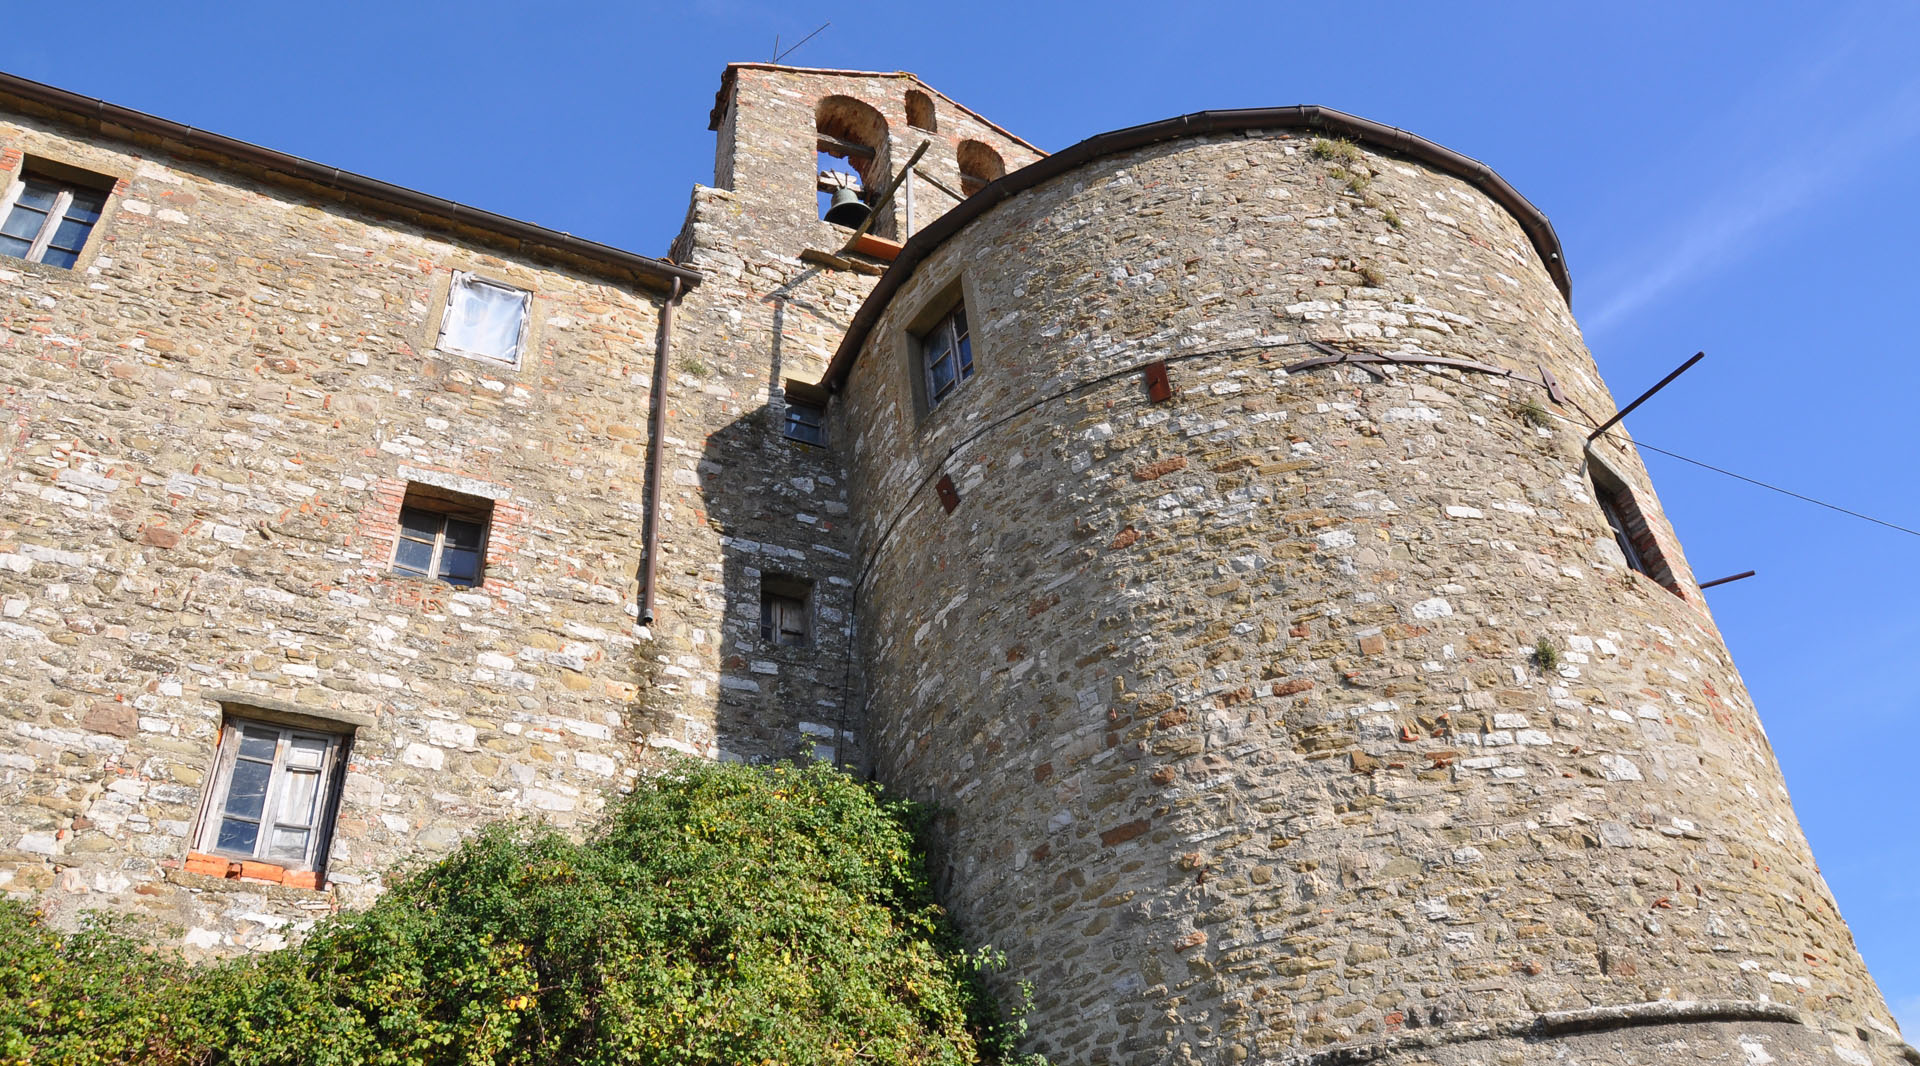 The Castle of Lisciano Niccone